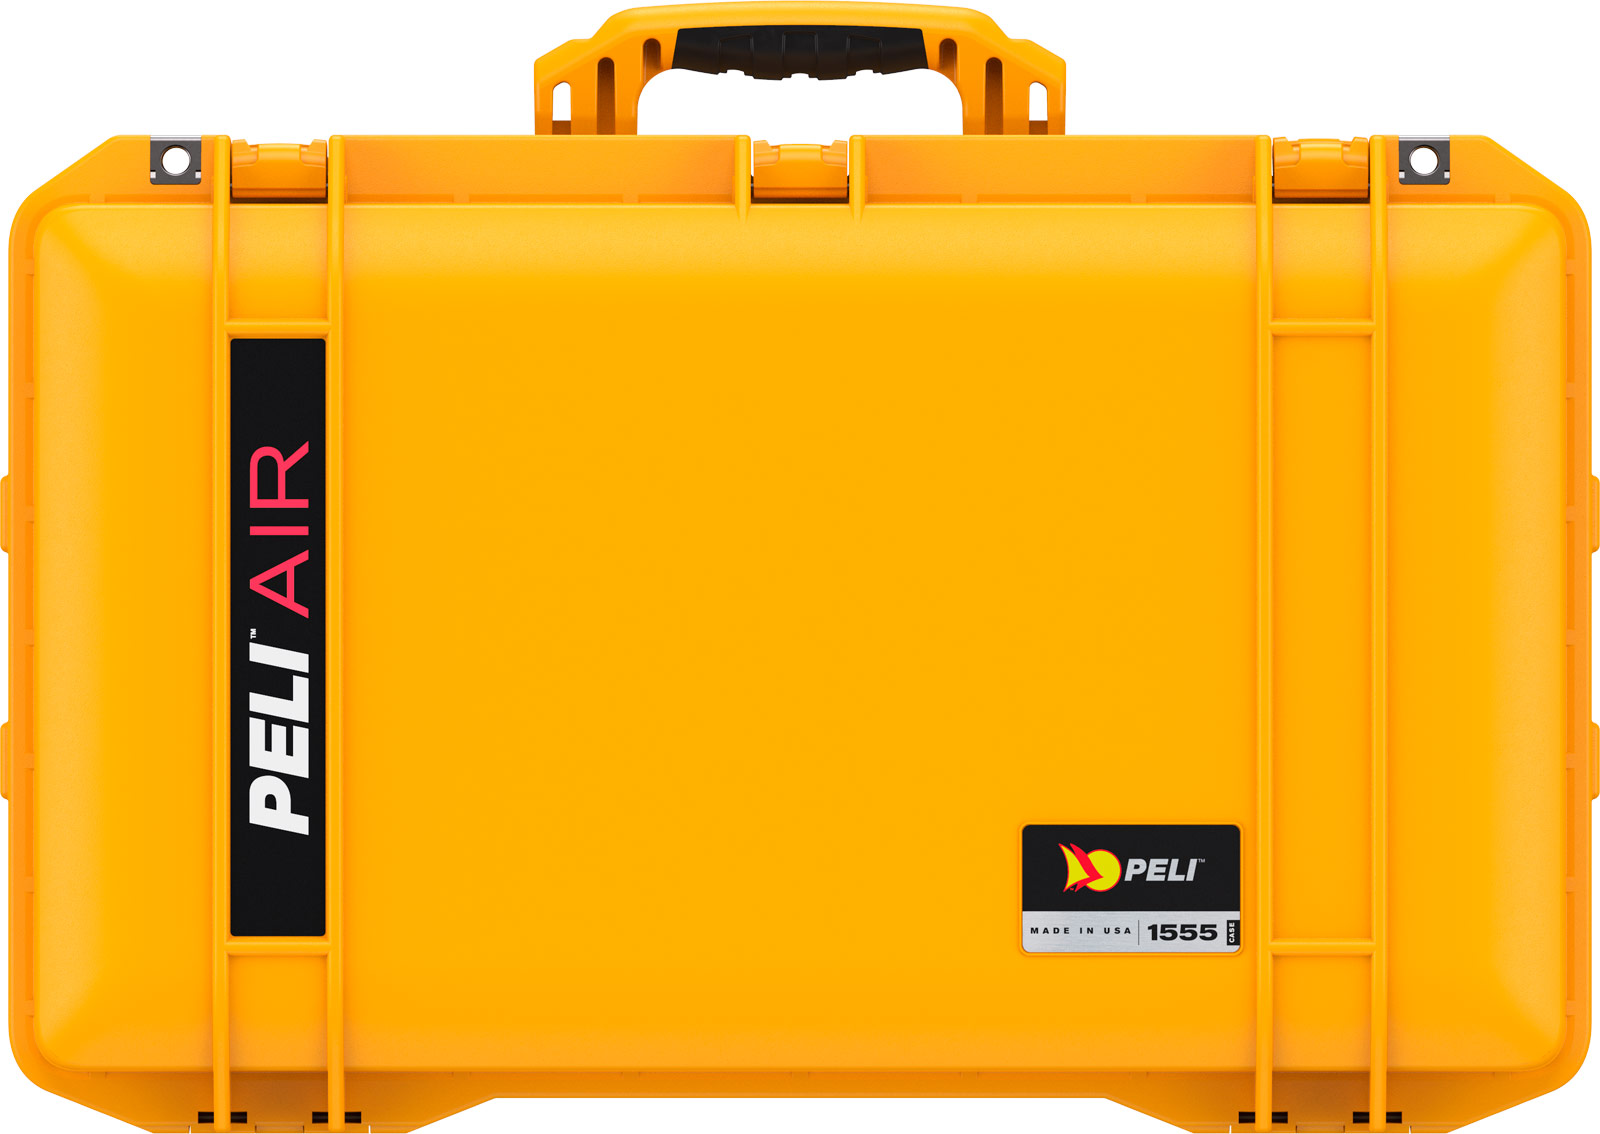 pelican 1555 air case yellow watertight cases